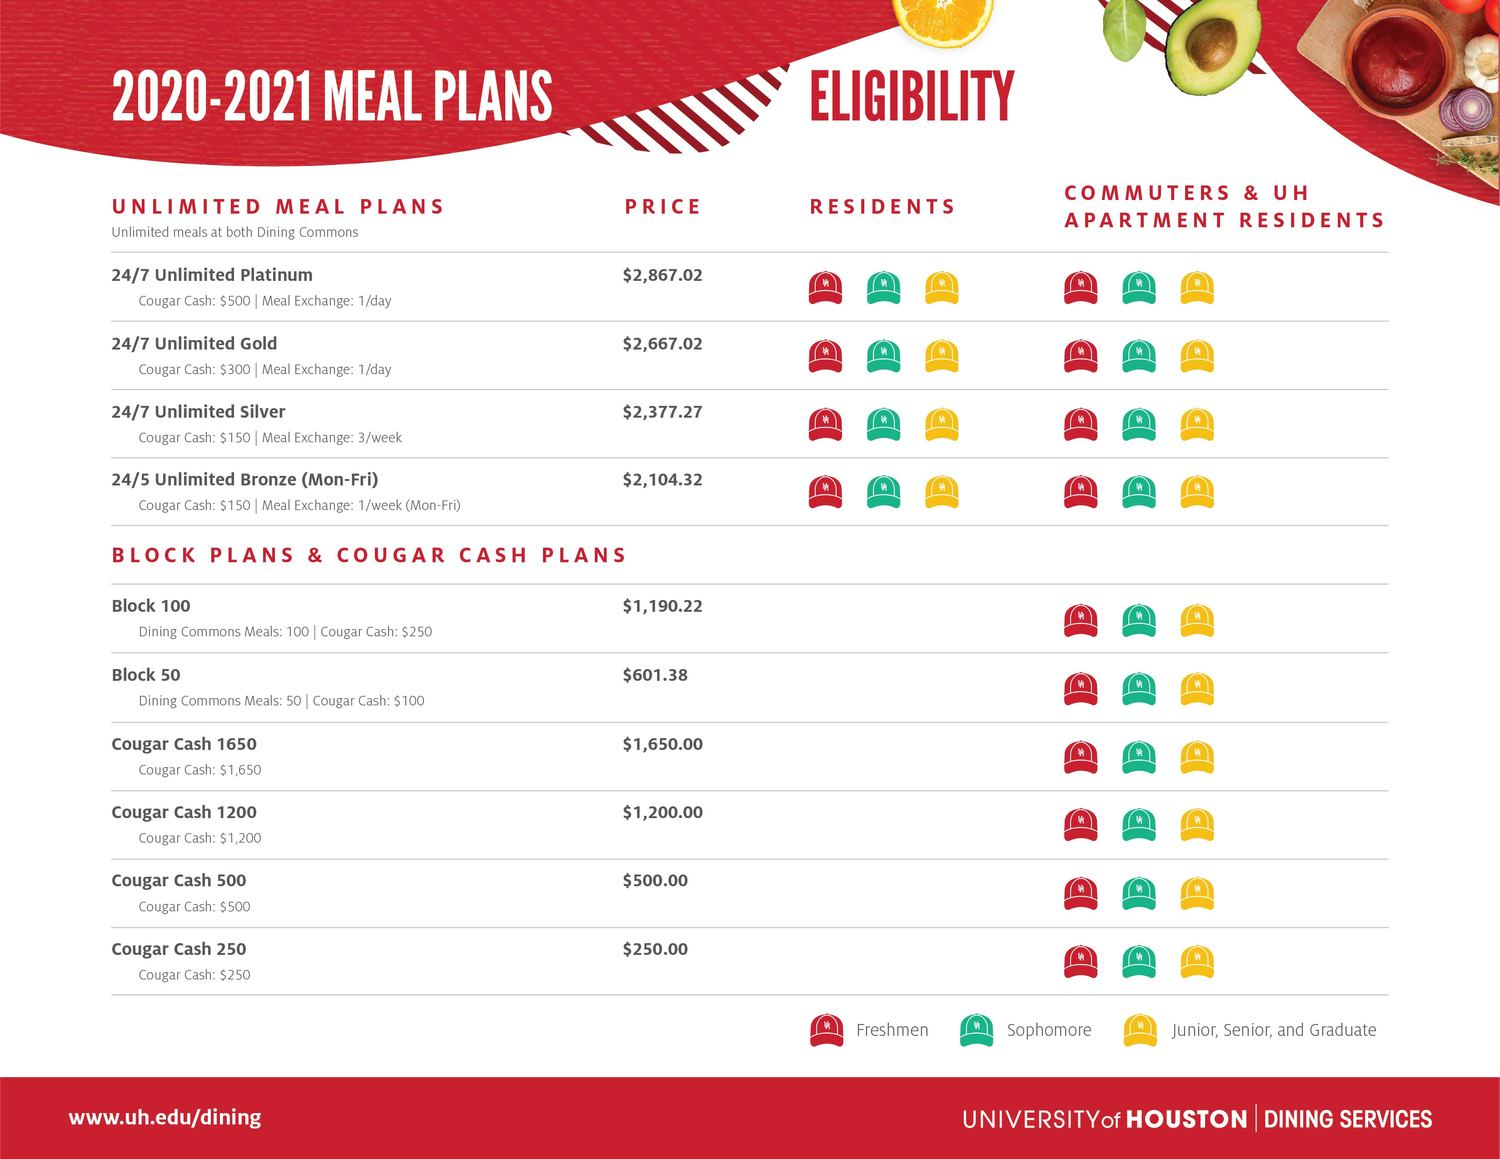 Dine On Campus at University of Houston || Meal Plan Eligibility